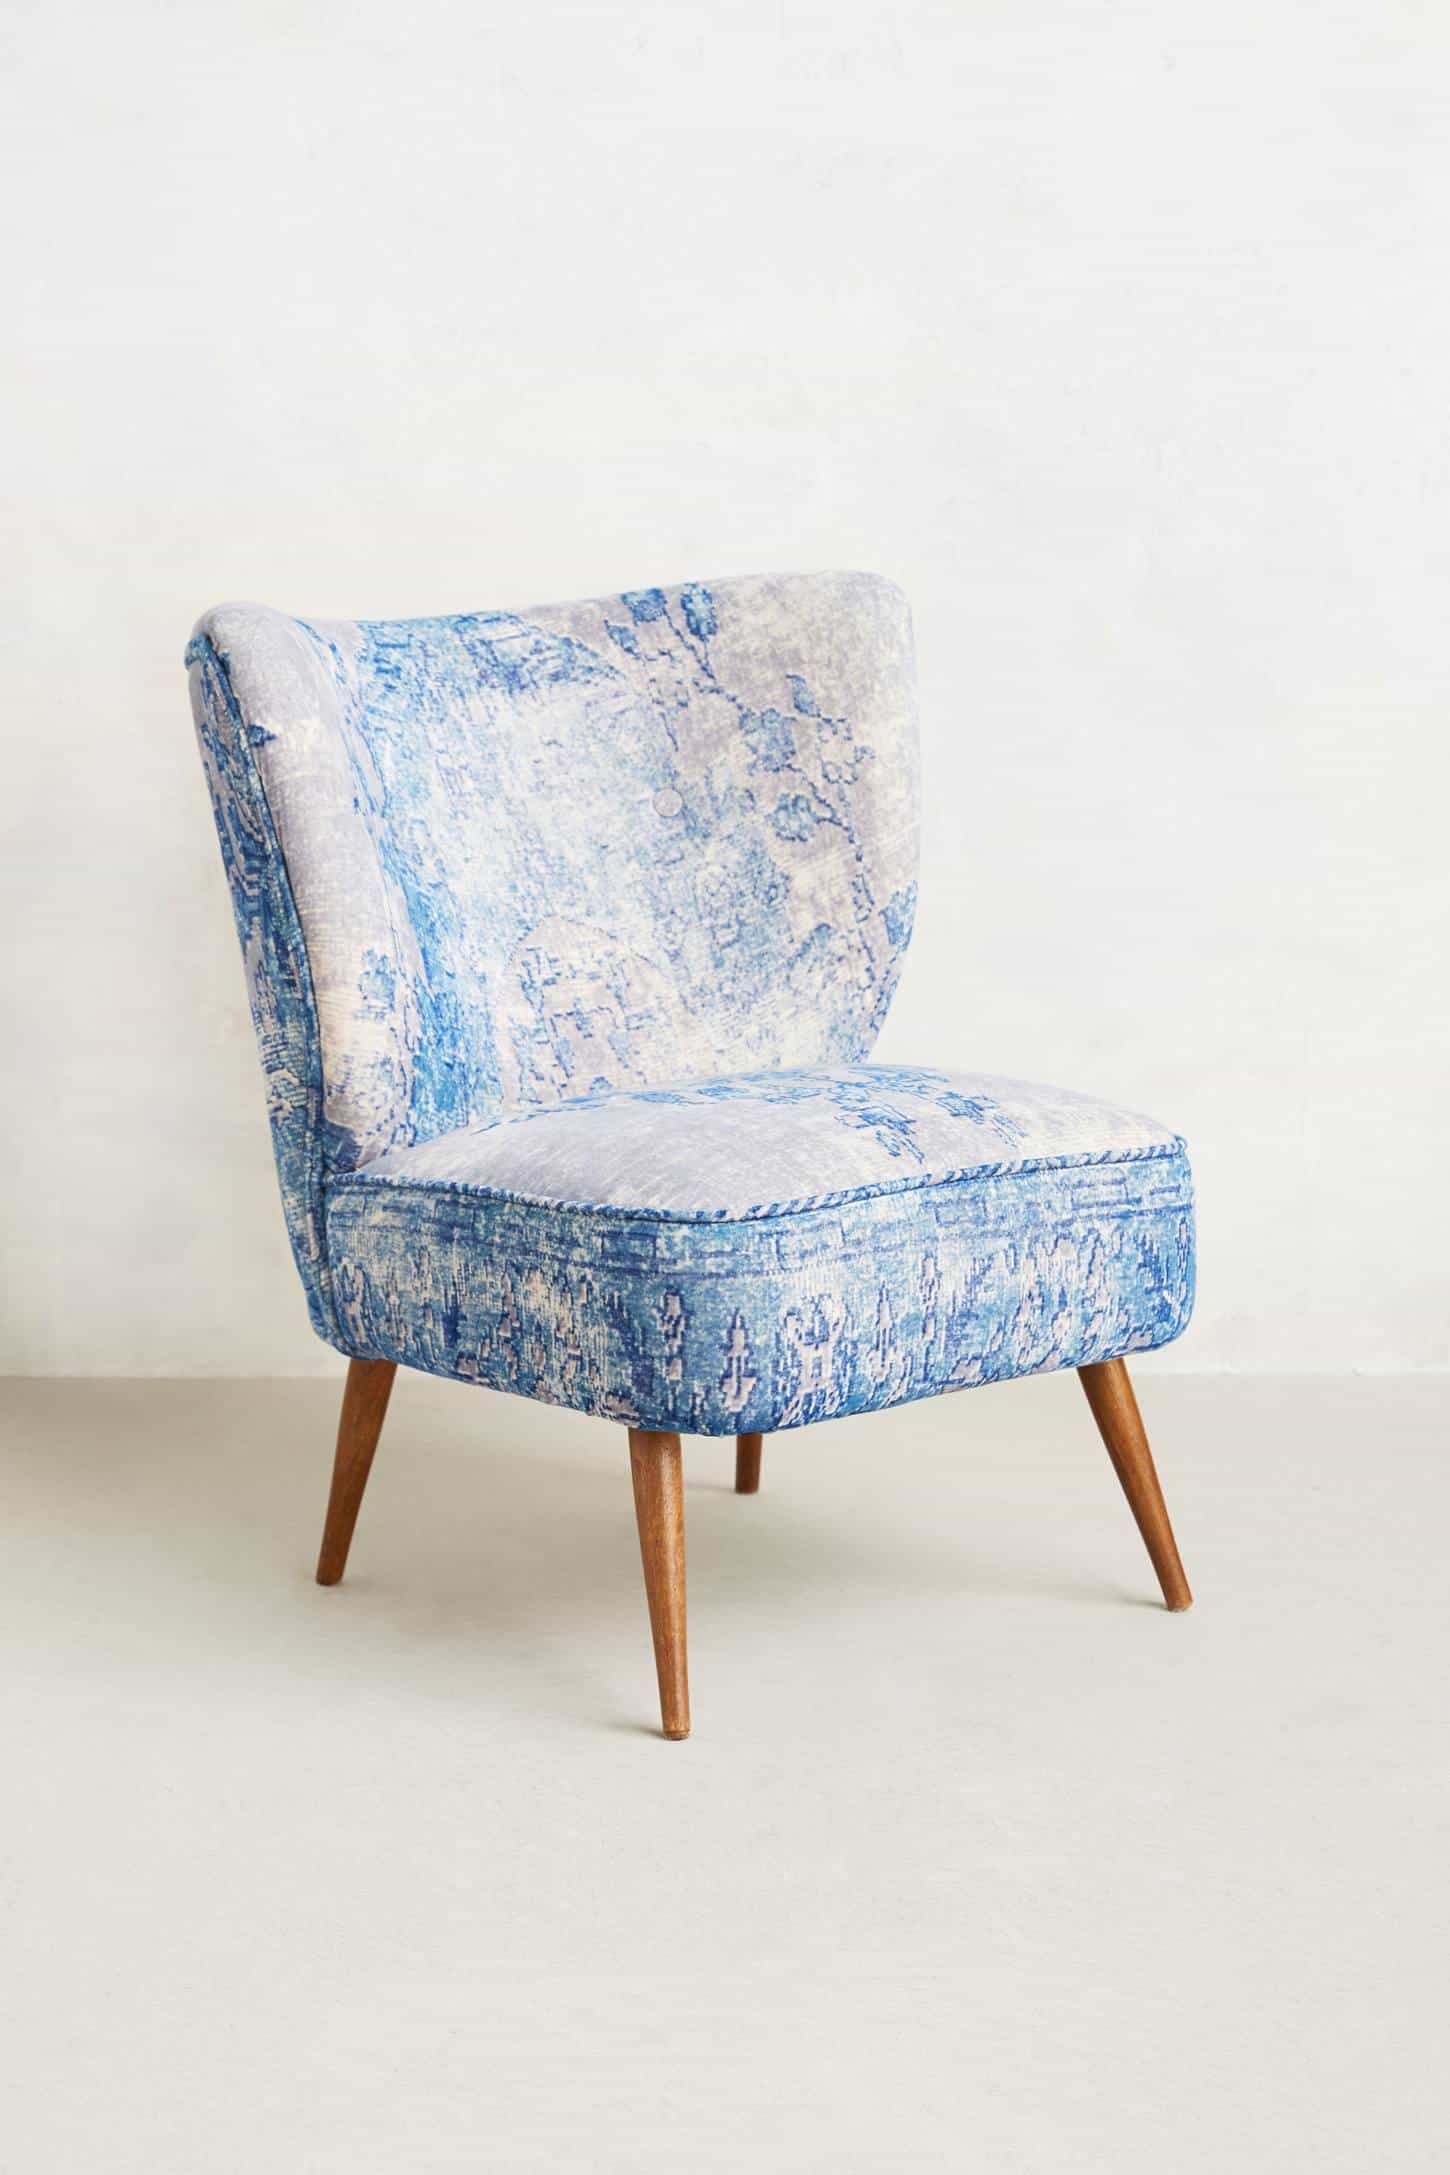 View In Gallery Moresque Occasional Chairs Anthropologie 4